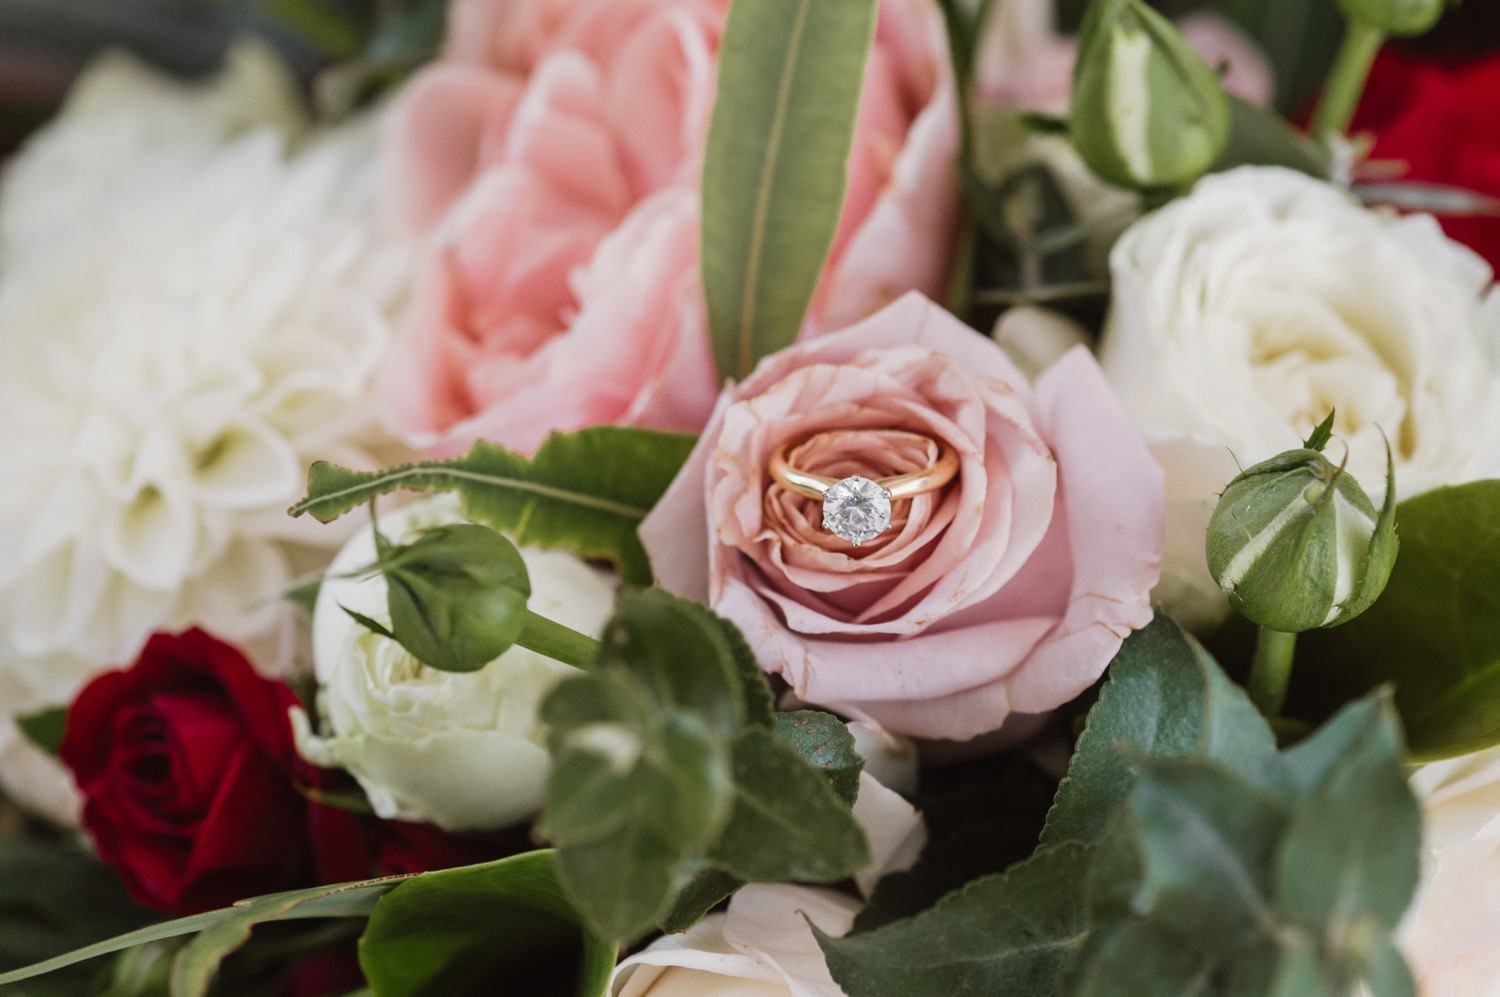 Engagement ring sitting in a pink flower